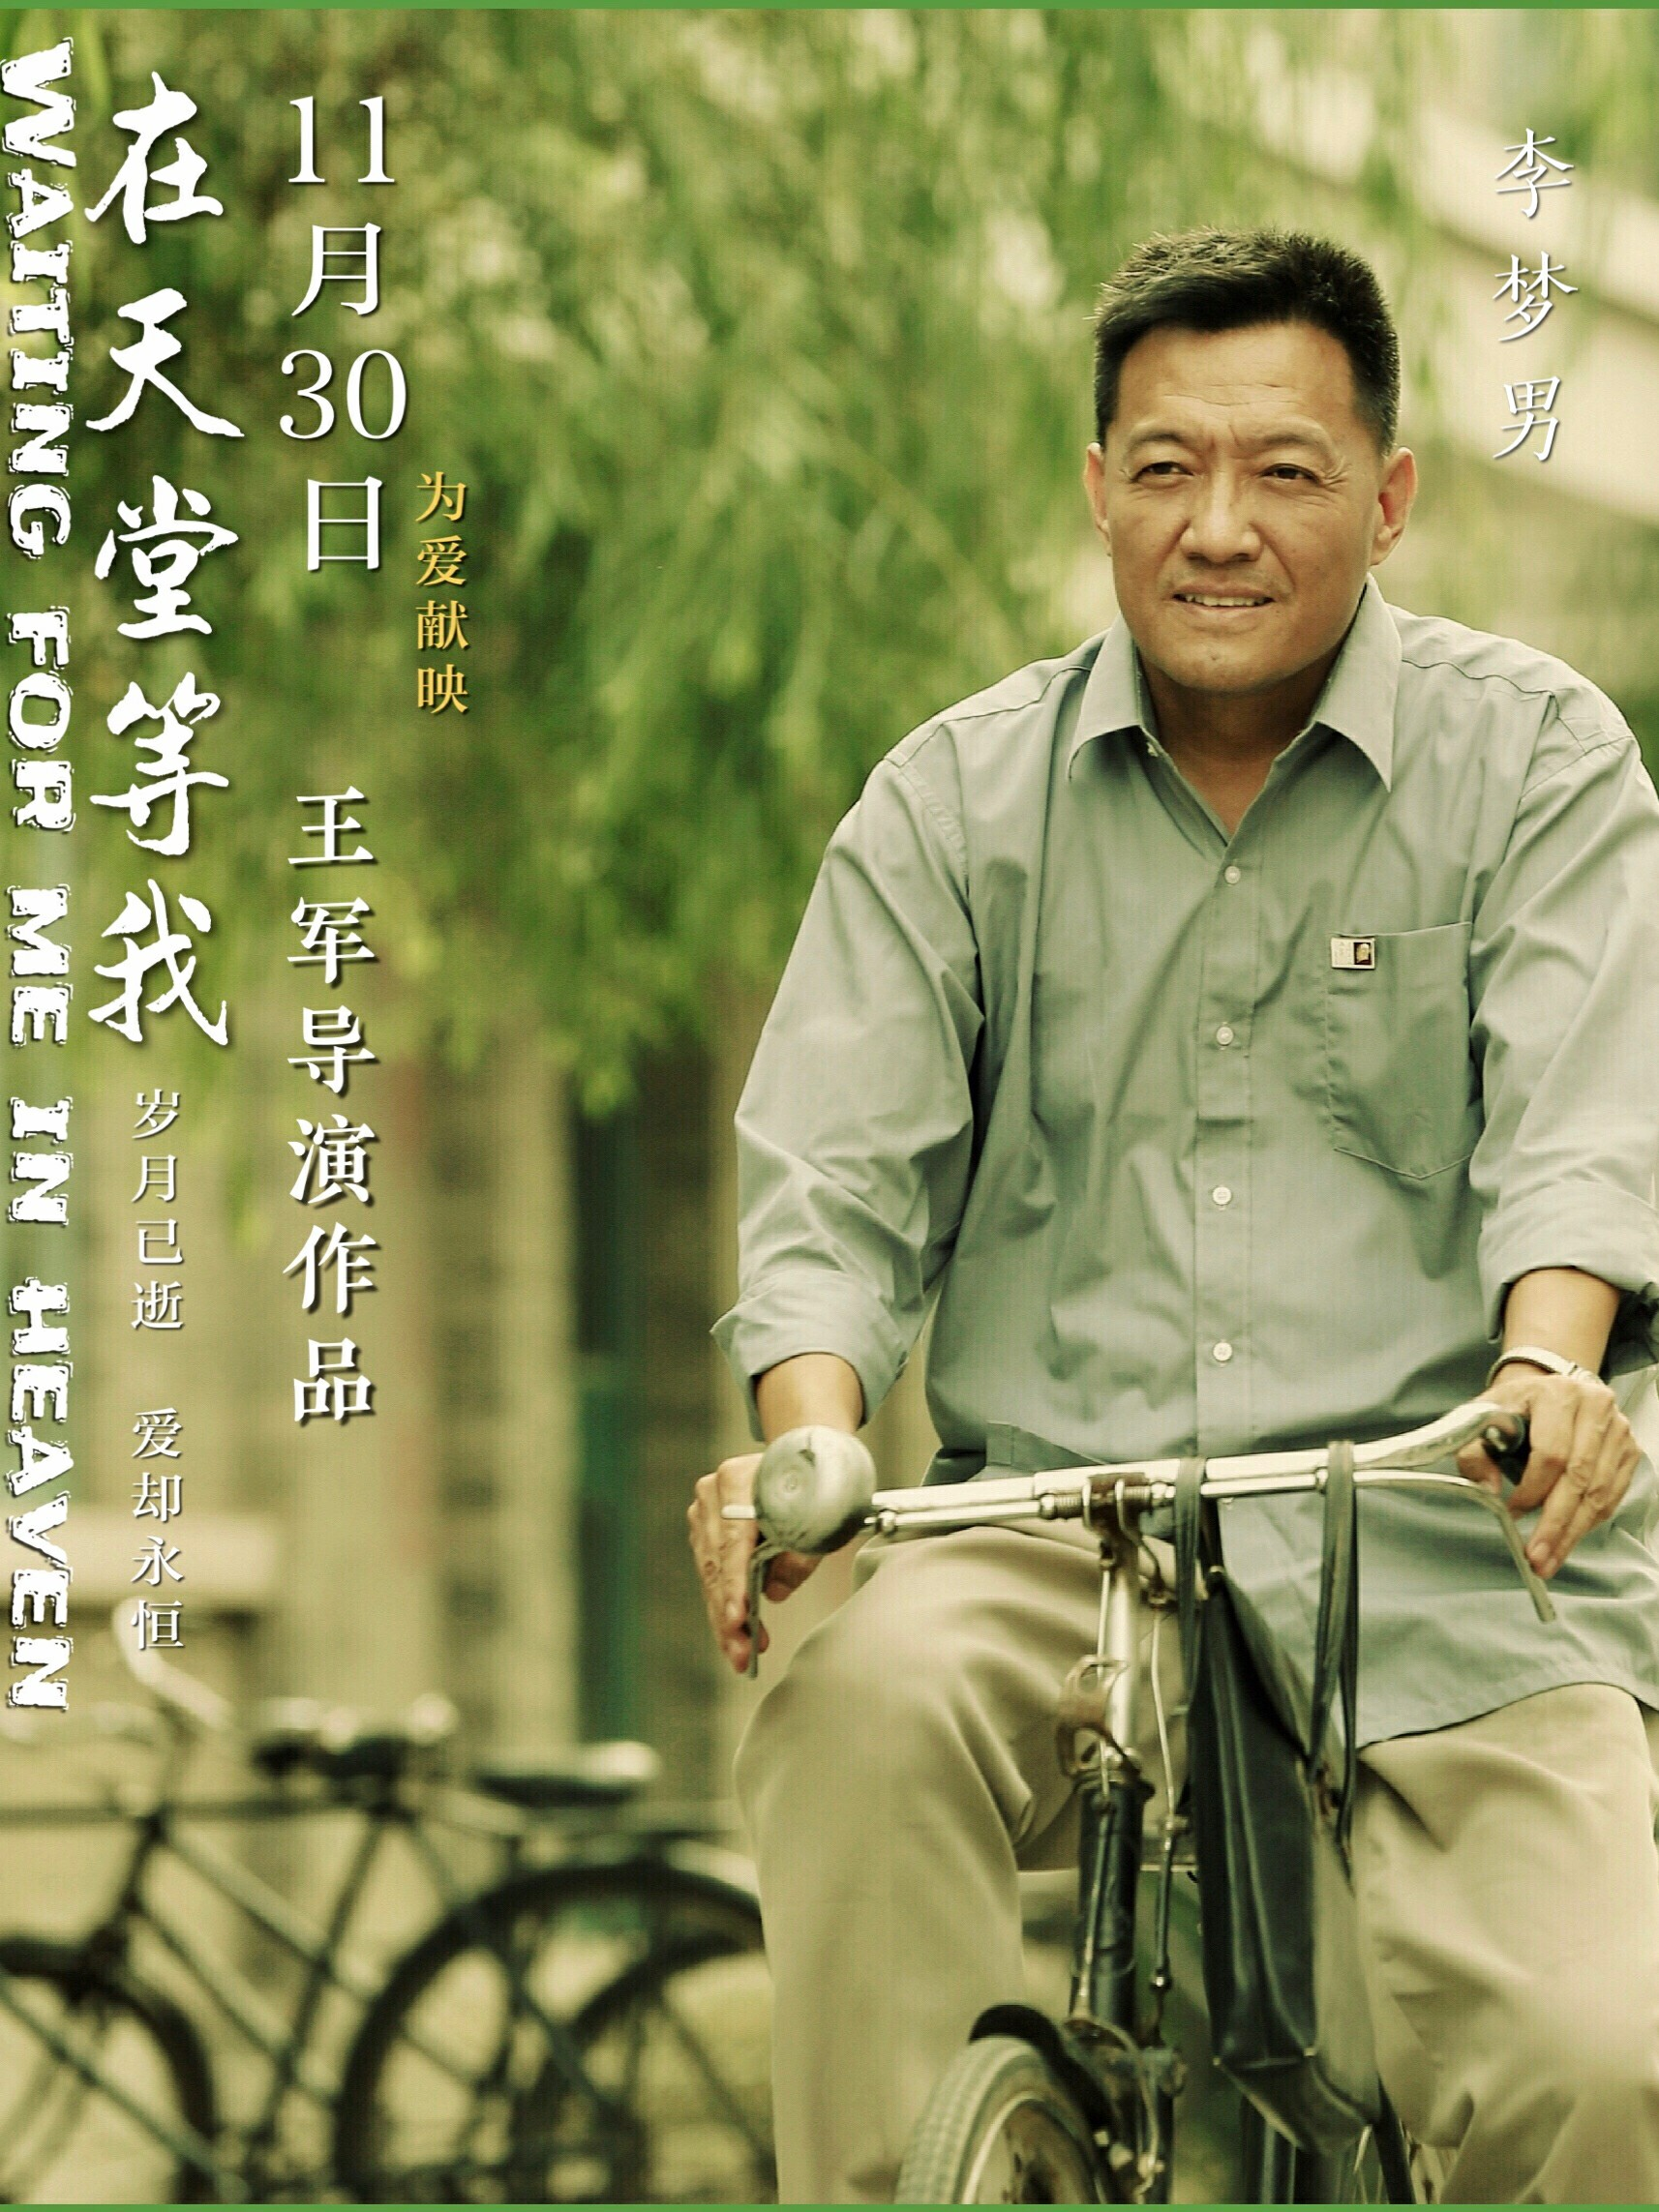 """wait for me in heaven"" opened today with li mengnan's controversial portrayal of extreme fatherhood."